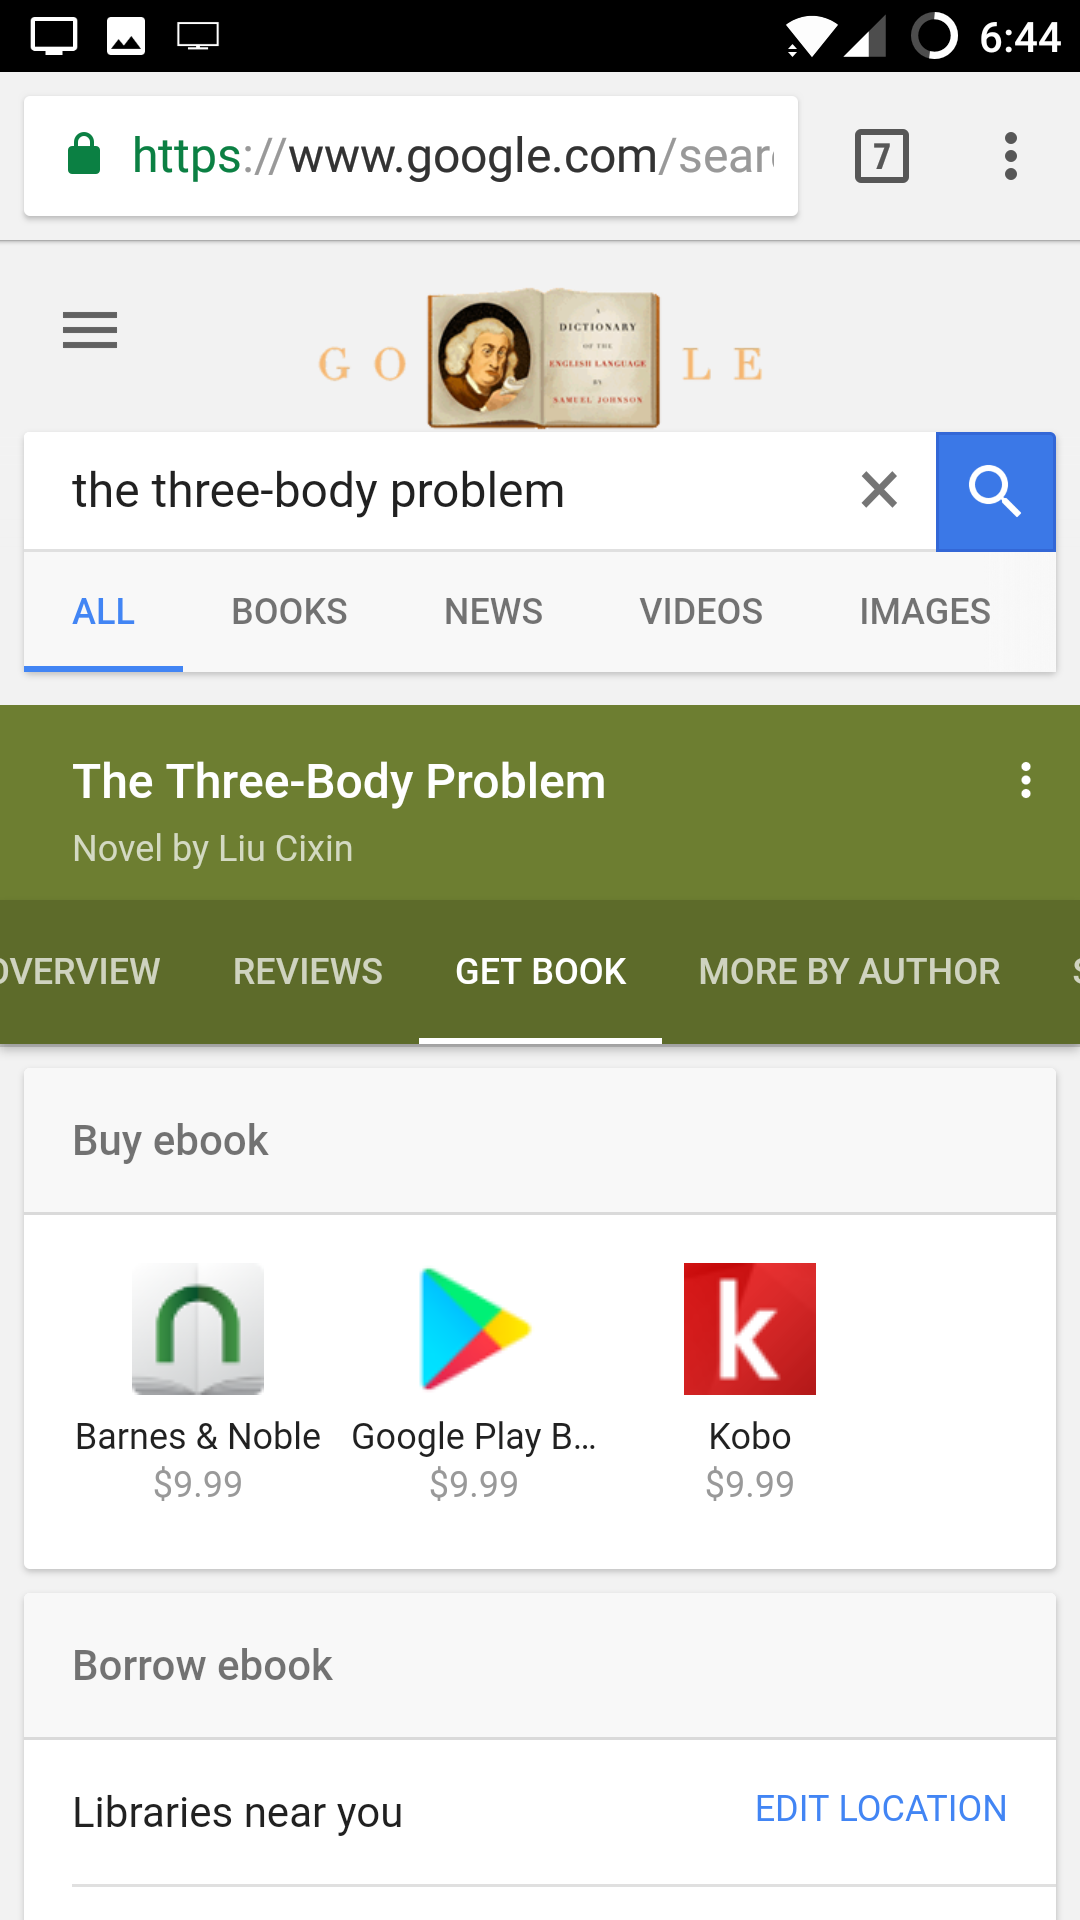 how to search for ebooks on google